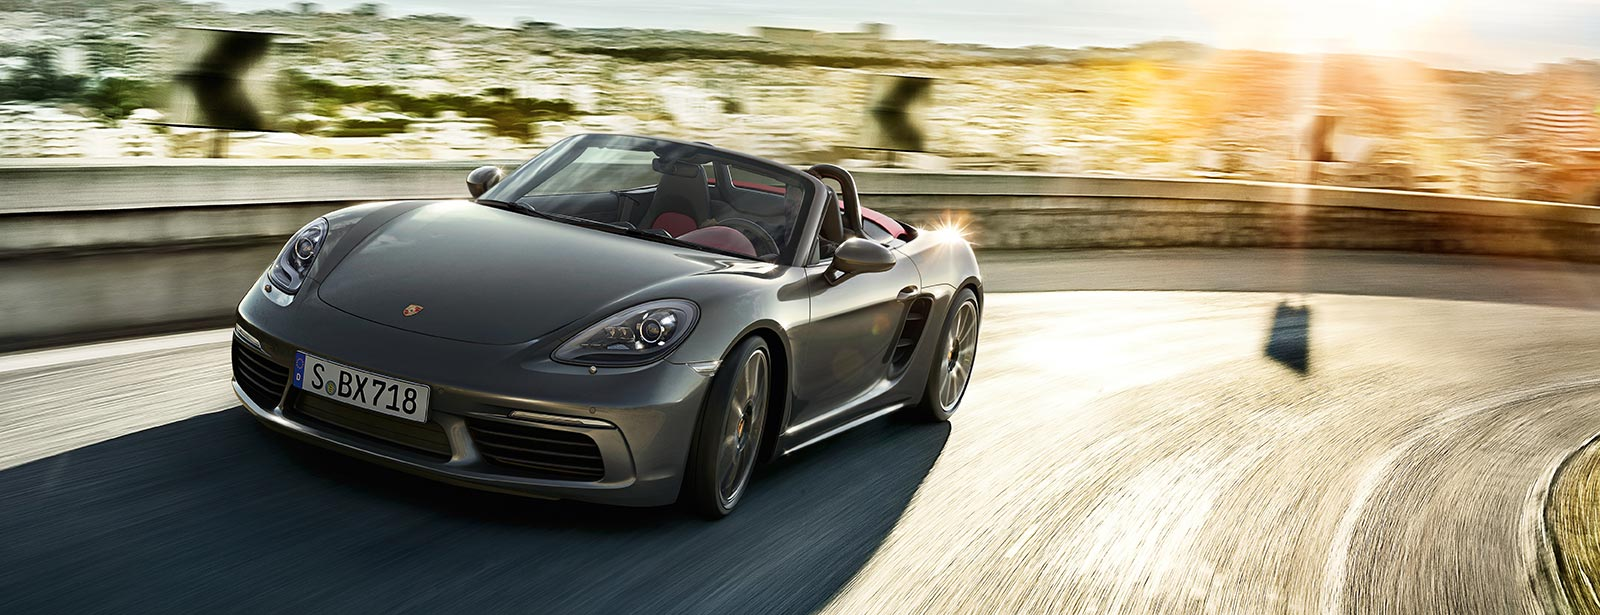 Porsche - For the sport of it. - The new 718 Boxster.